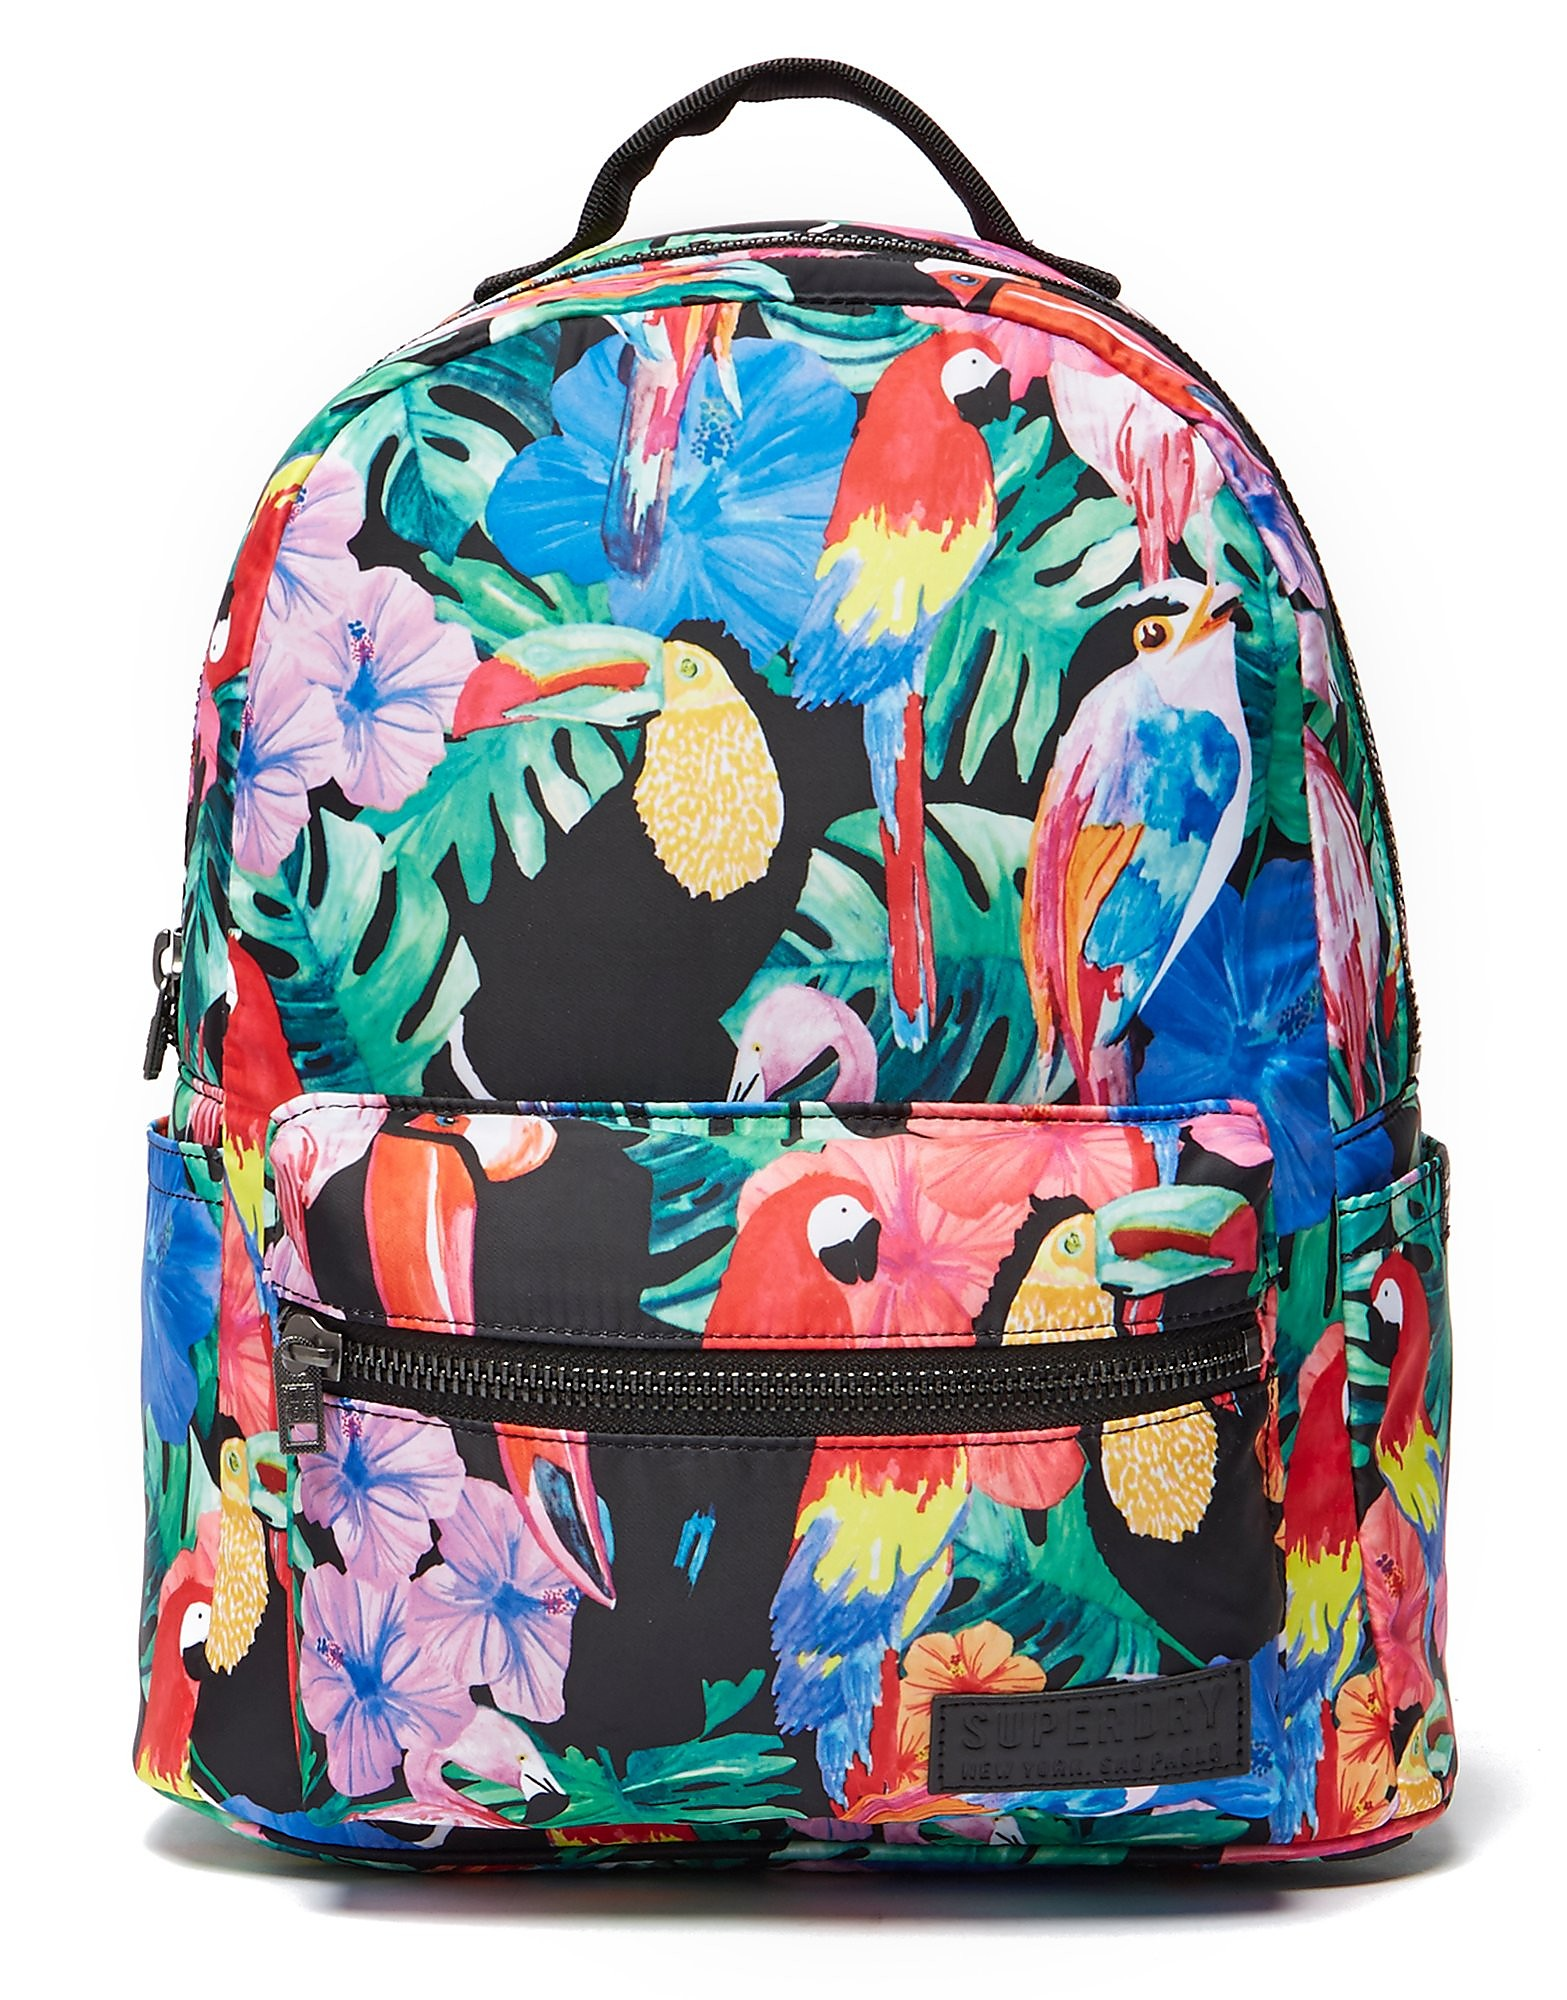 Superdry Urban Jungle Backpack